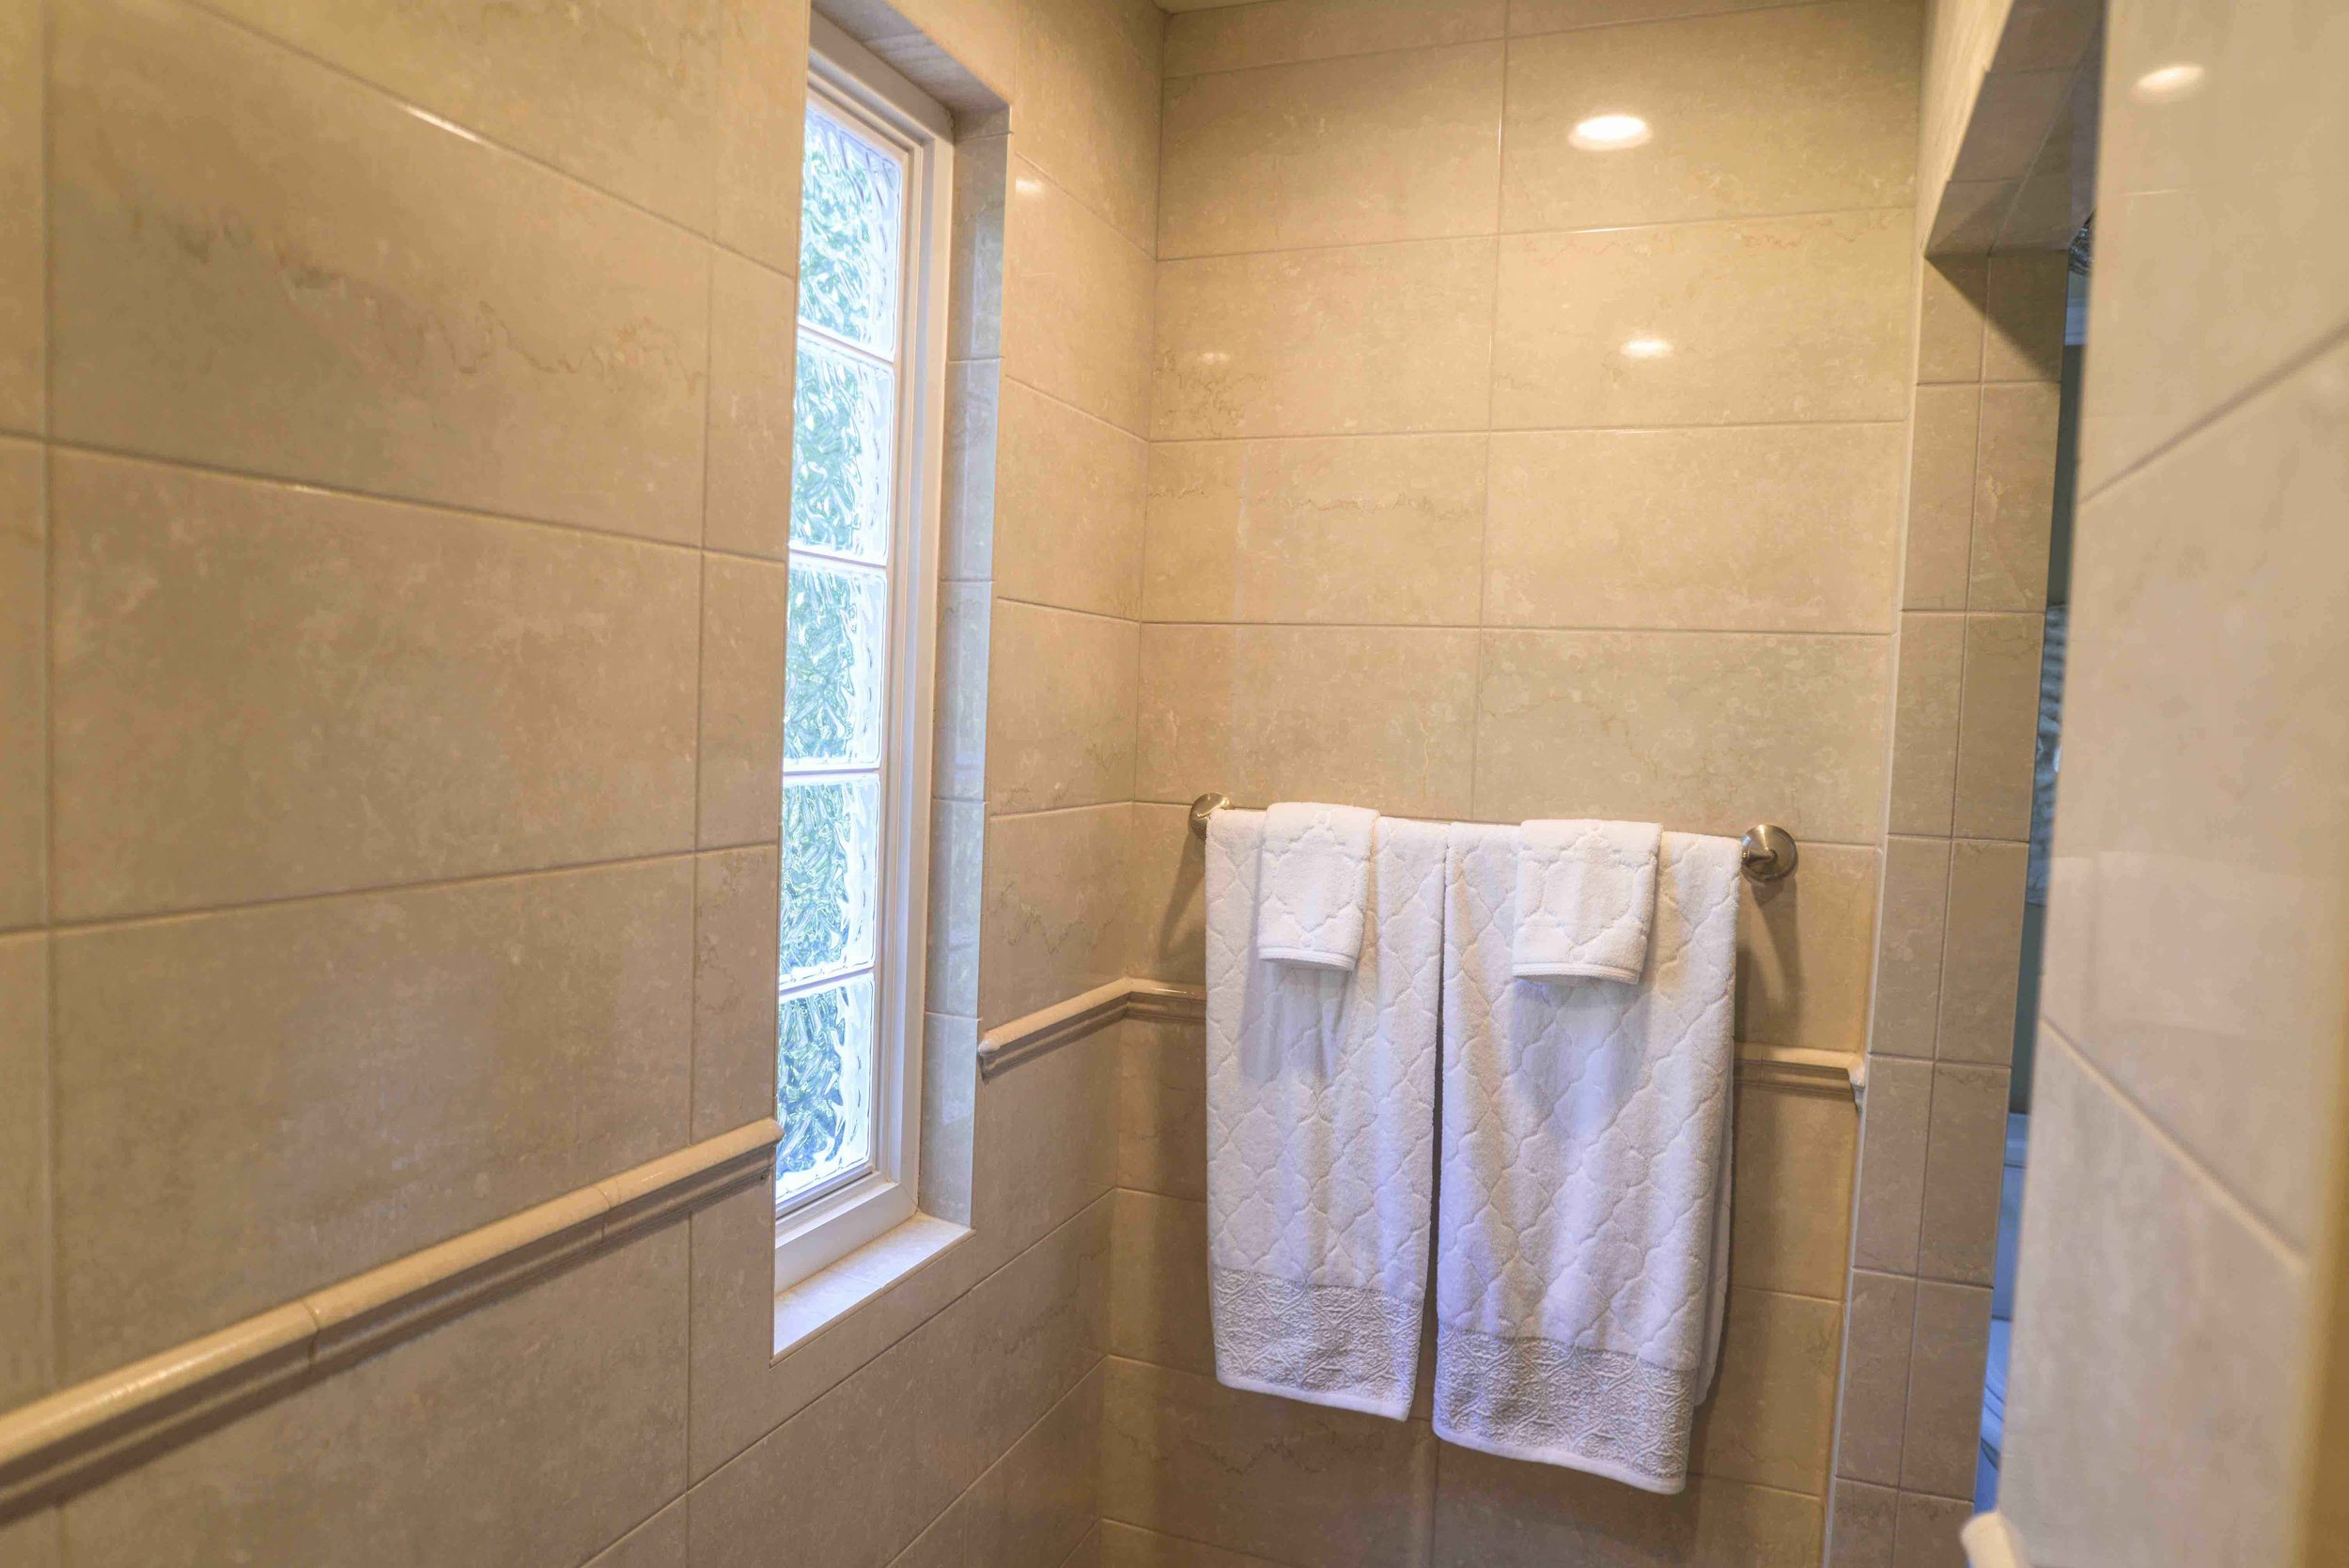 180 Spaces | Interior Design Turnarounds...  Doorless Shower Interior with Glass Block window